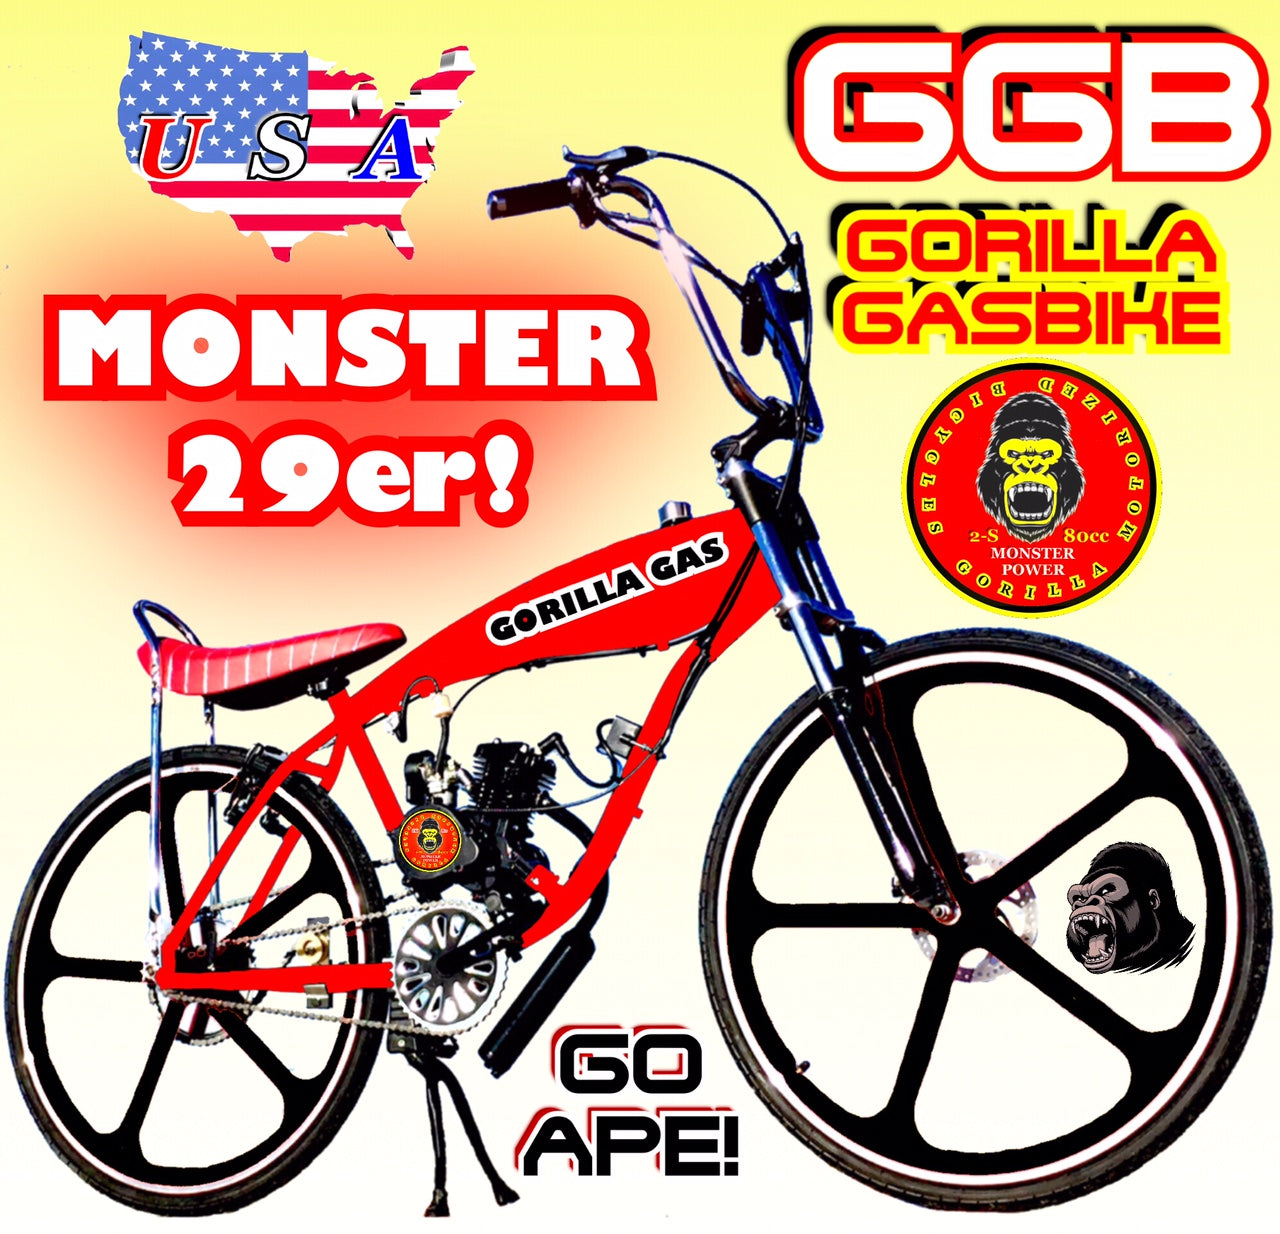 MONSTER 29ER TM COMPLETE DO-IT-YOURSELF 2-STROKE 66CC/80CC MOTORIZED GAS  TANK CRUISER BIKE SYSTEM RED BLACK